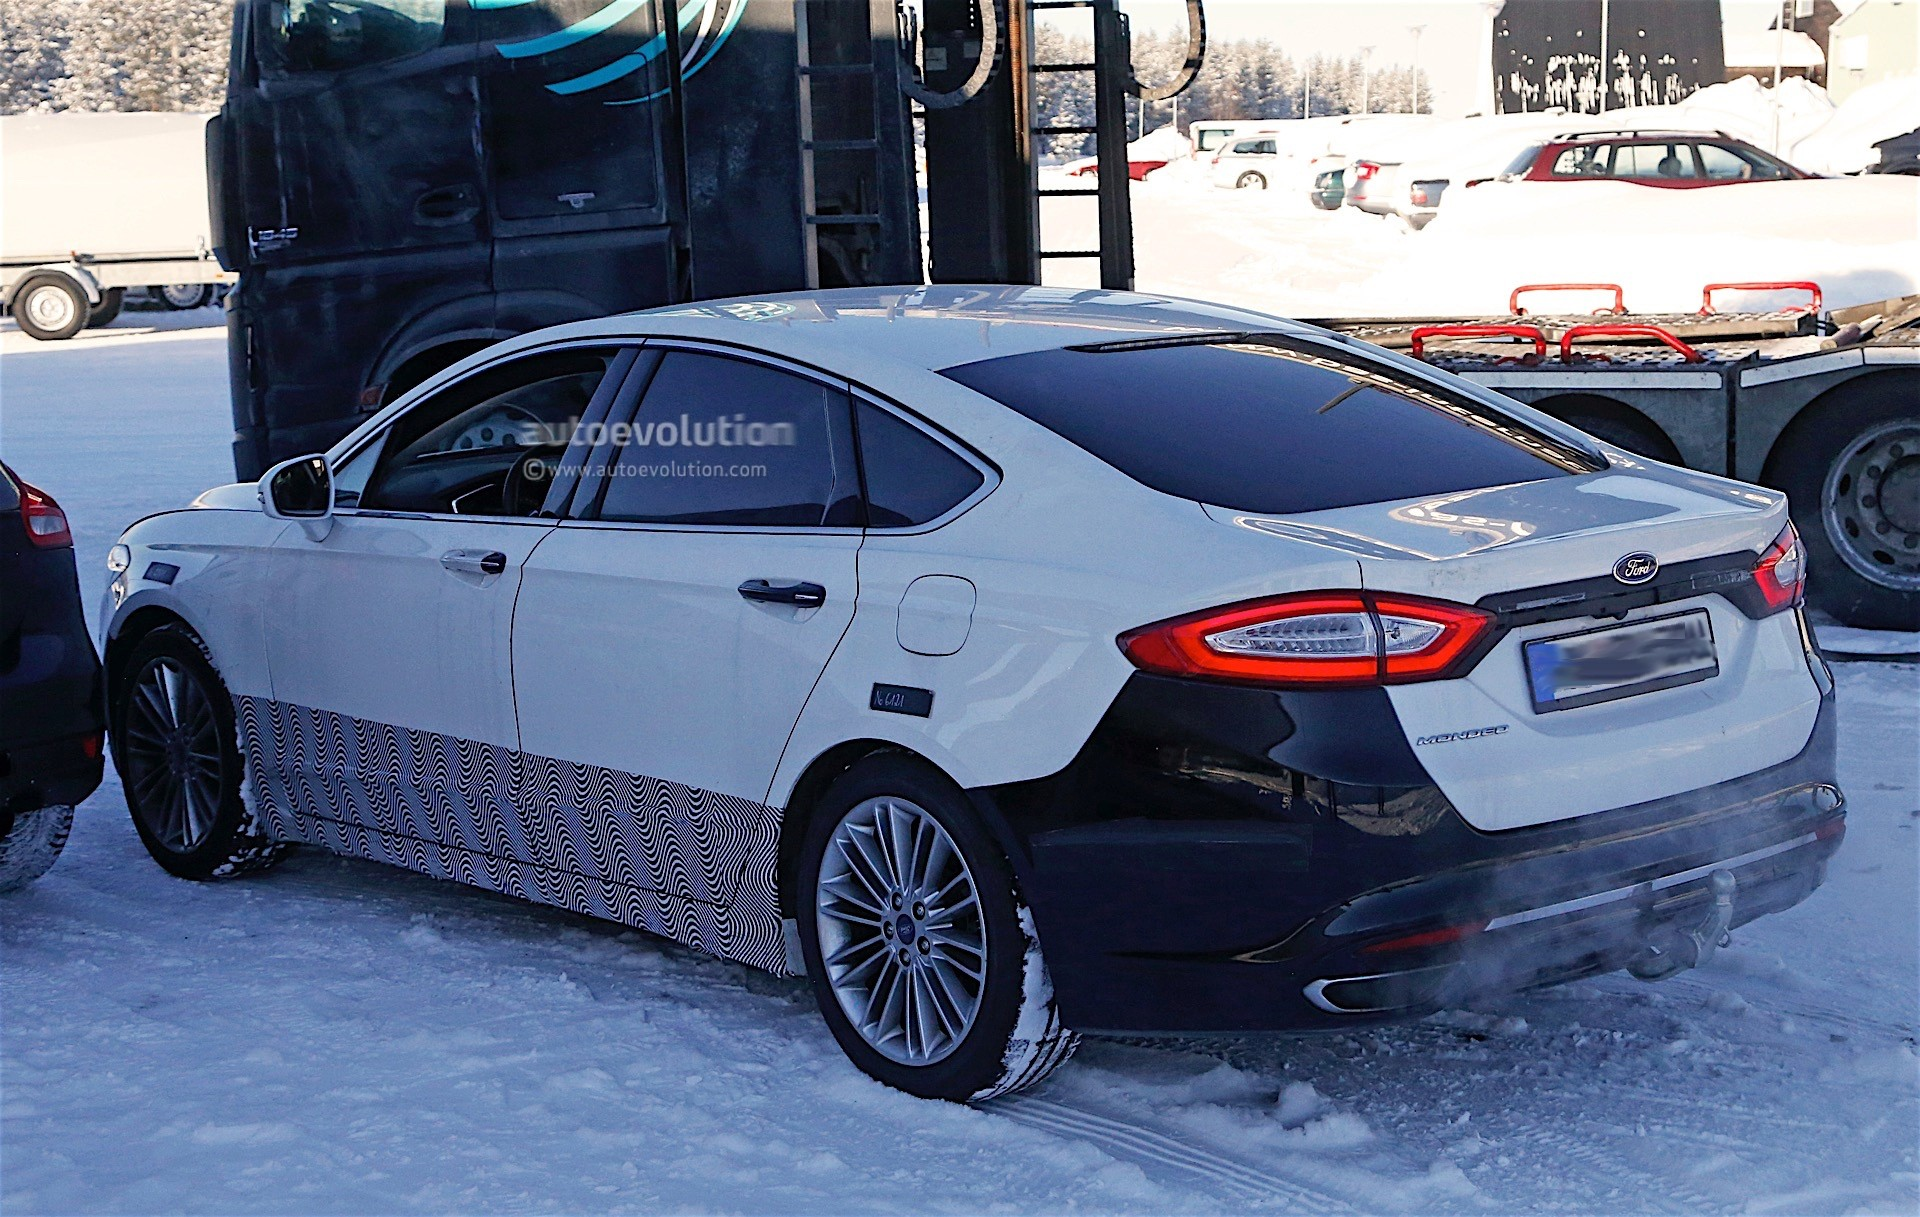 2017 ford mondeo facelift spyshots reveal refreshed lights and bumpers autoevolution